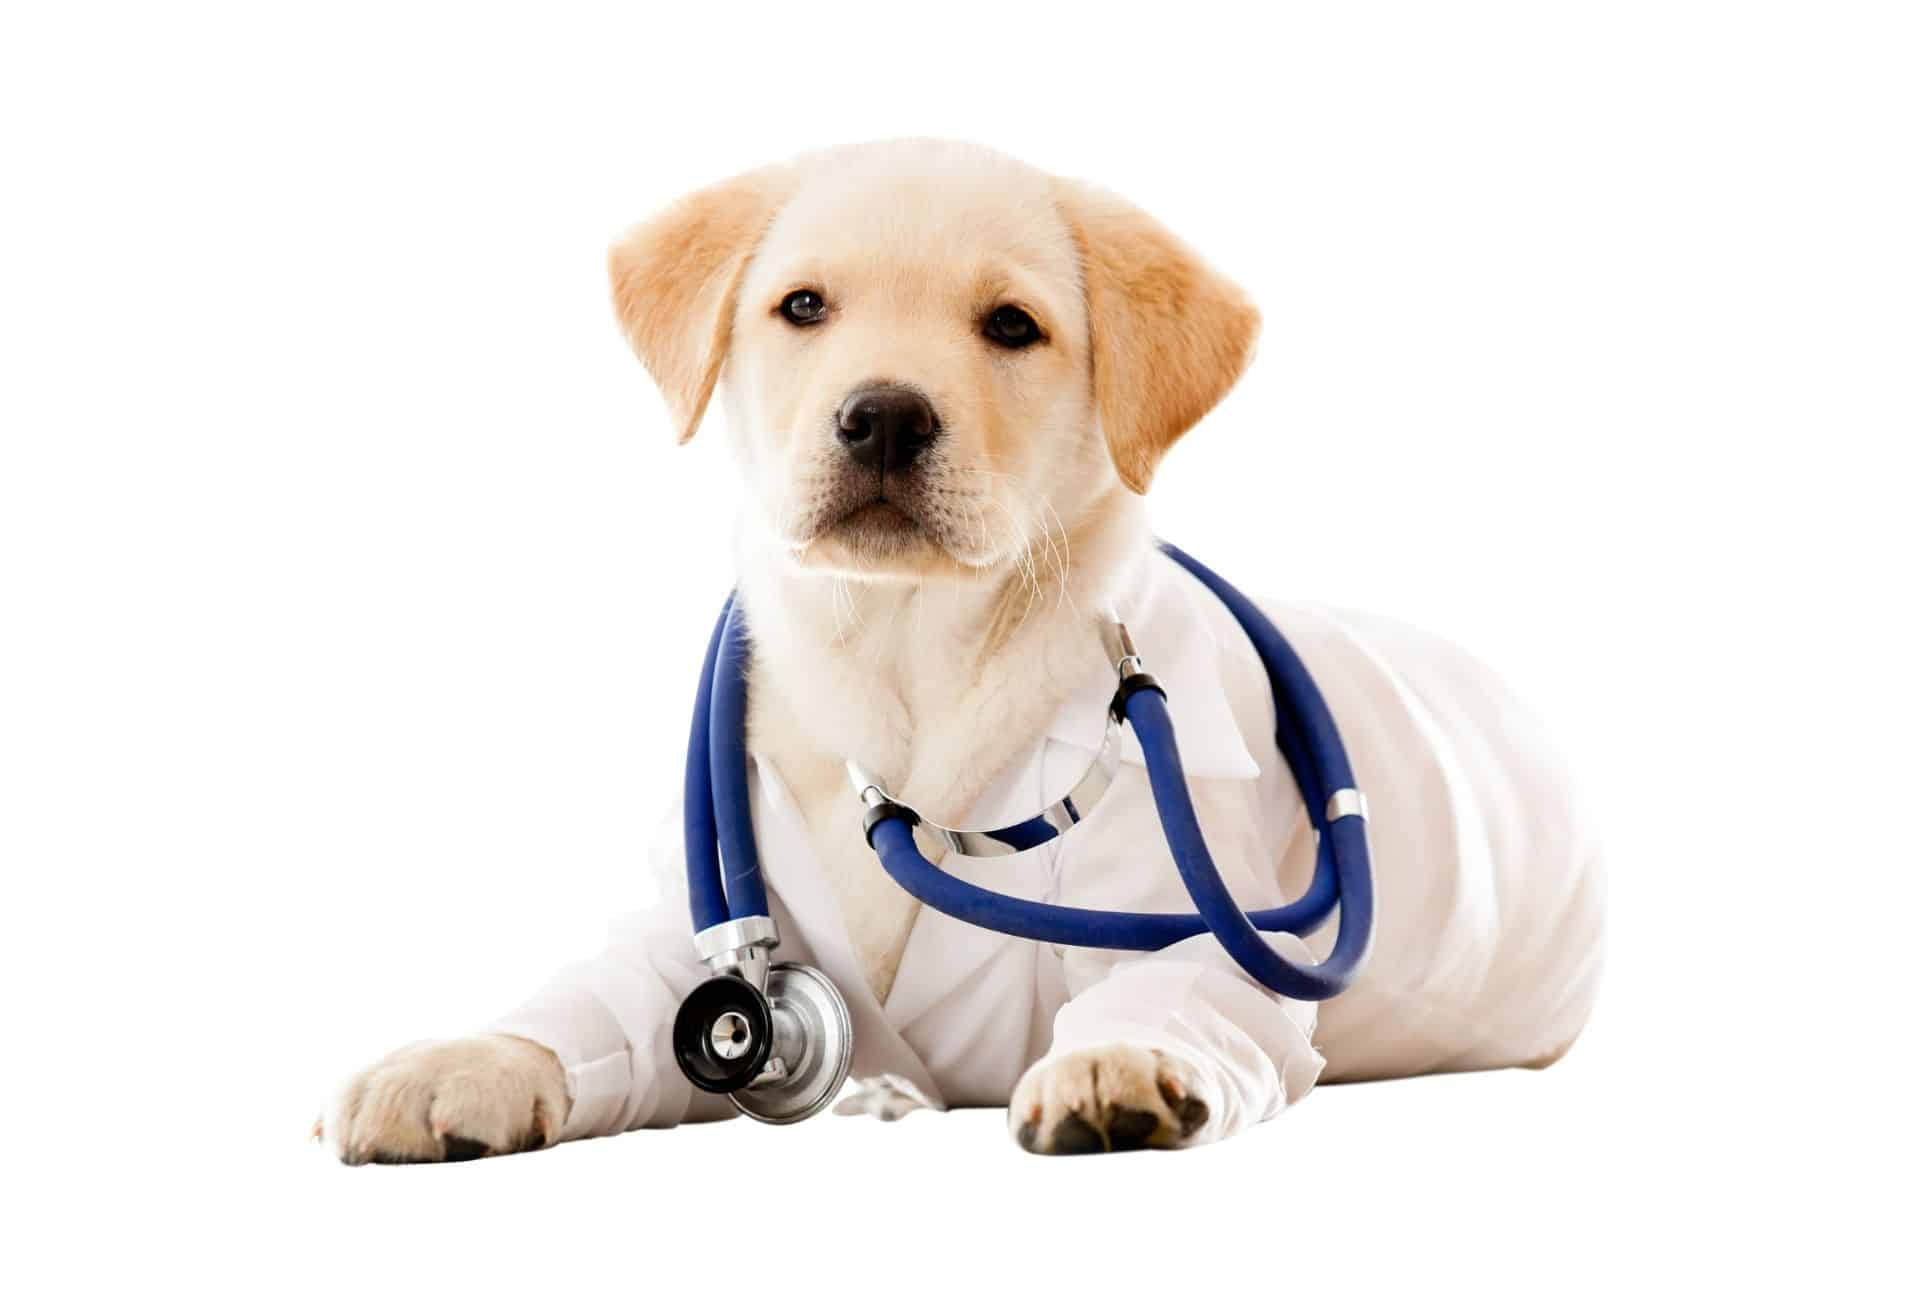 Cream-colored Labrador puppy wears veterinarian clothing with a stethoscope around the neck.